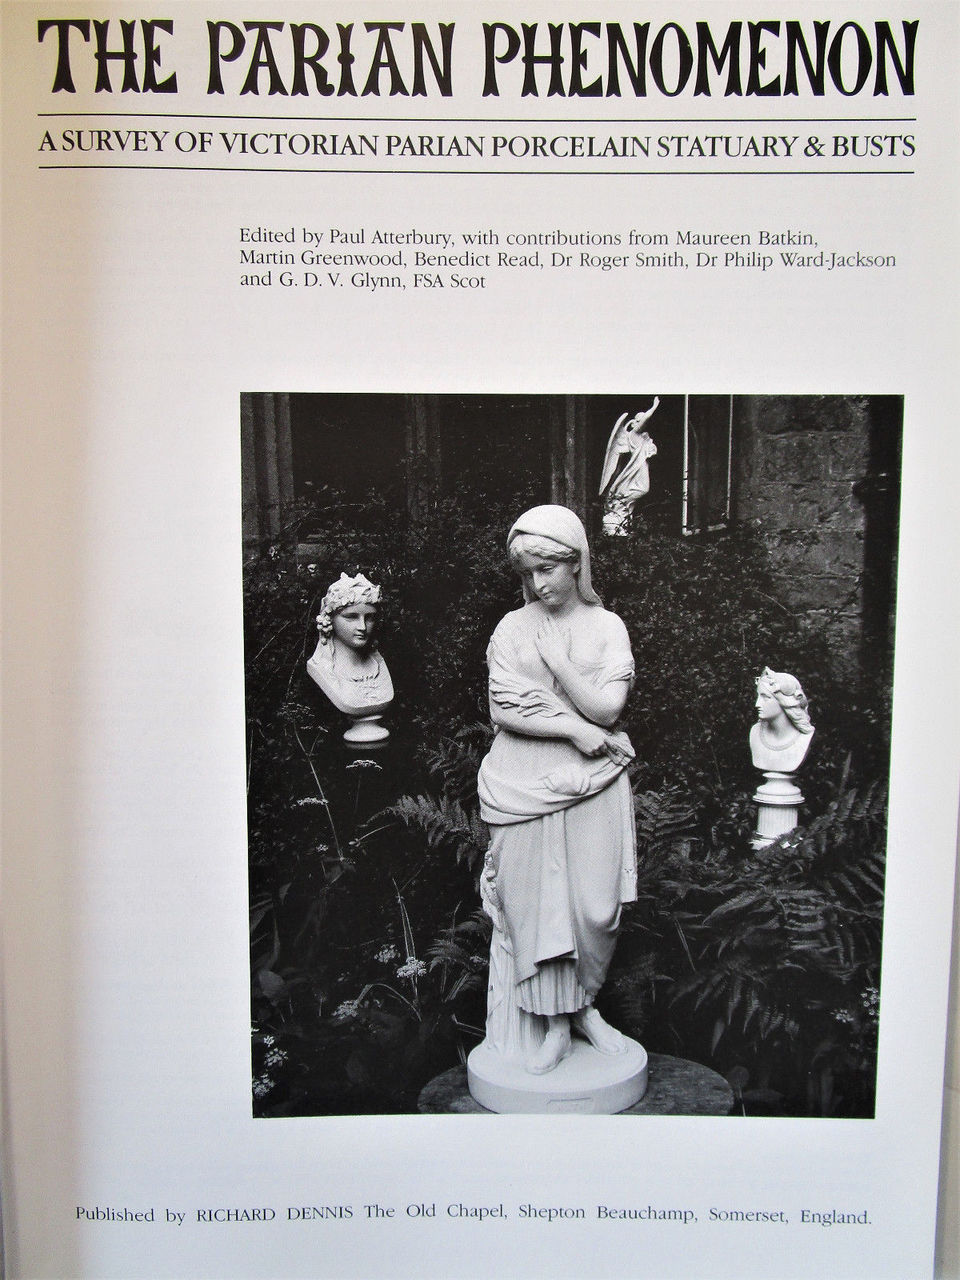 THE PARIAN PHENOMENON: VICTORIAN PORCELAIN STATUARY & BUSTS, by Paul Atterbury - 1989